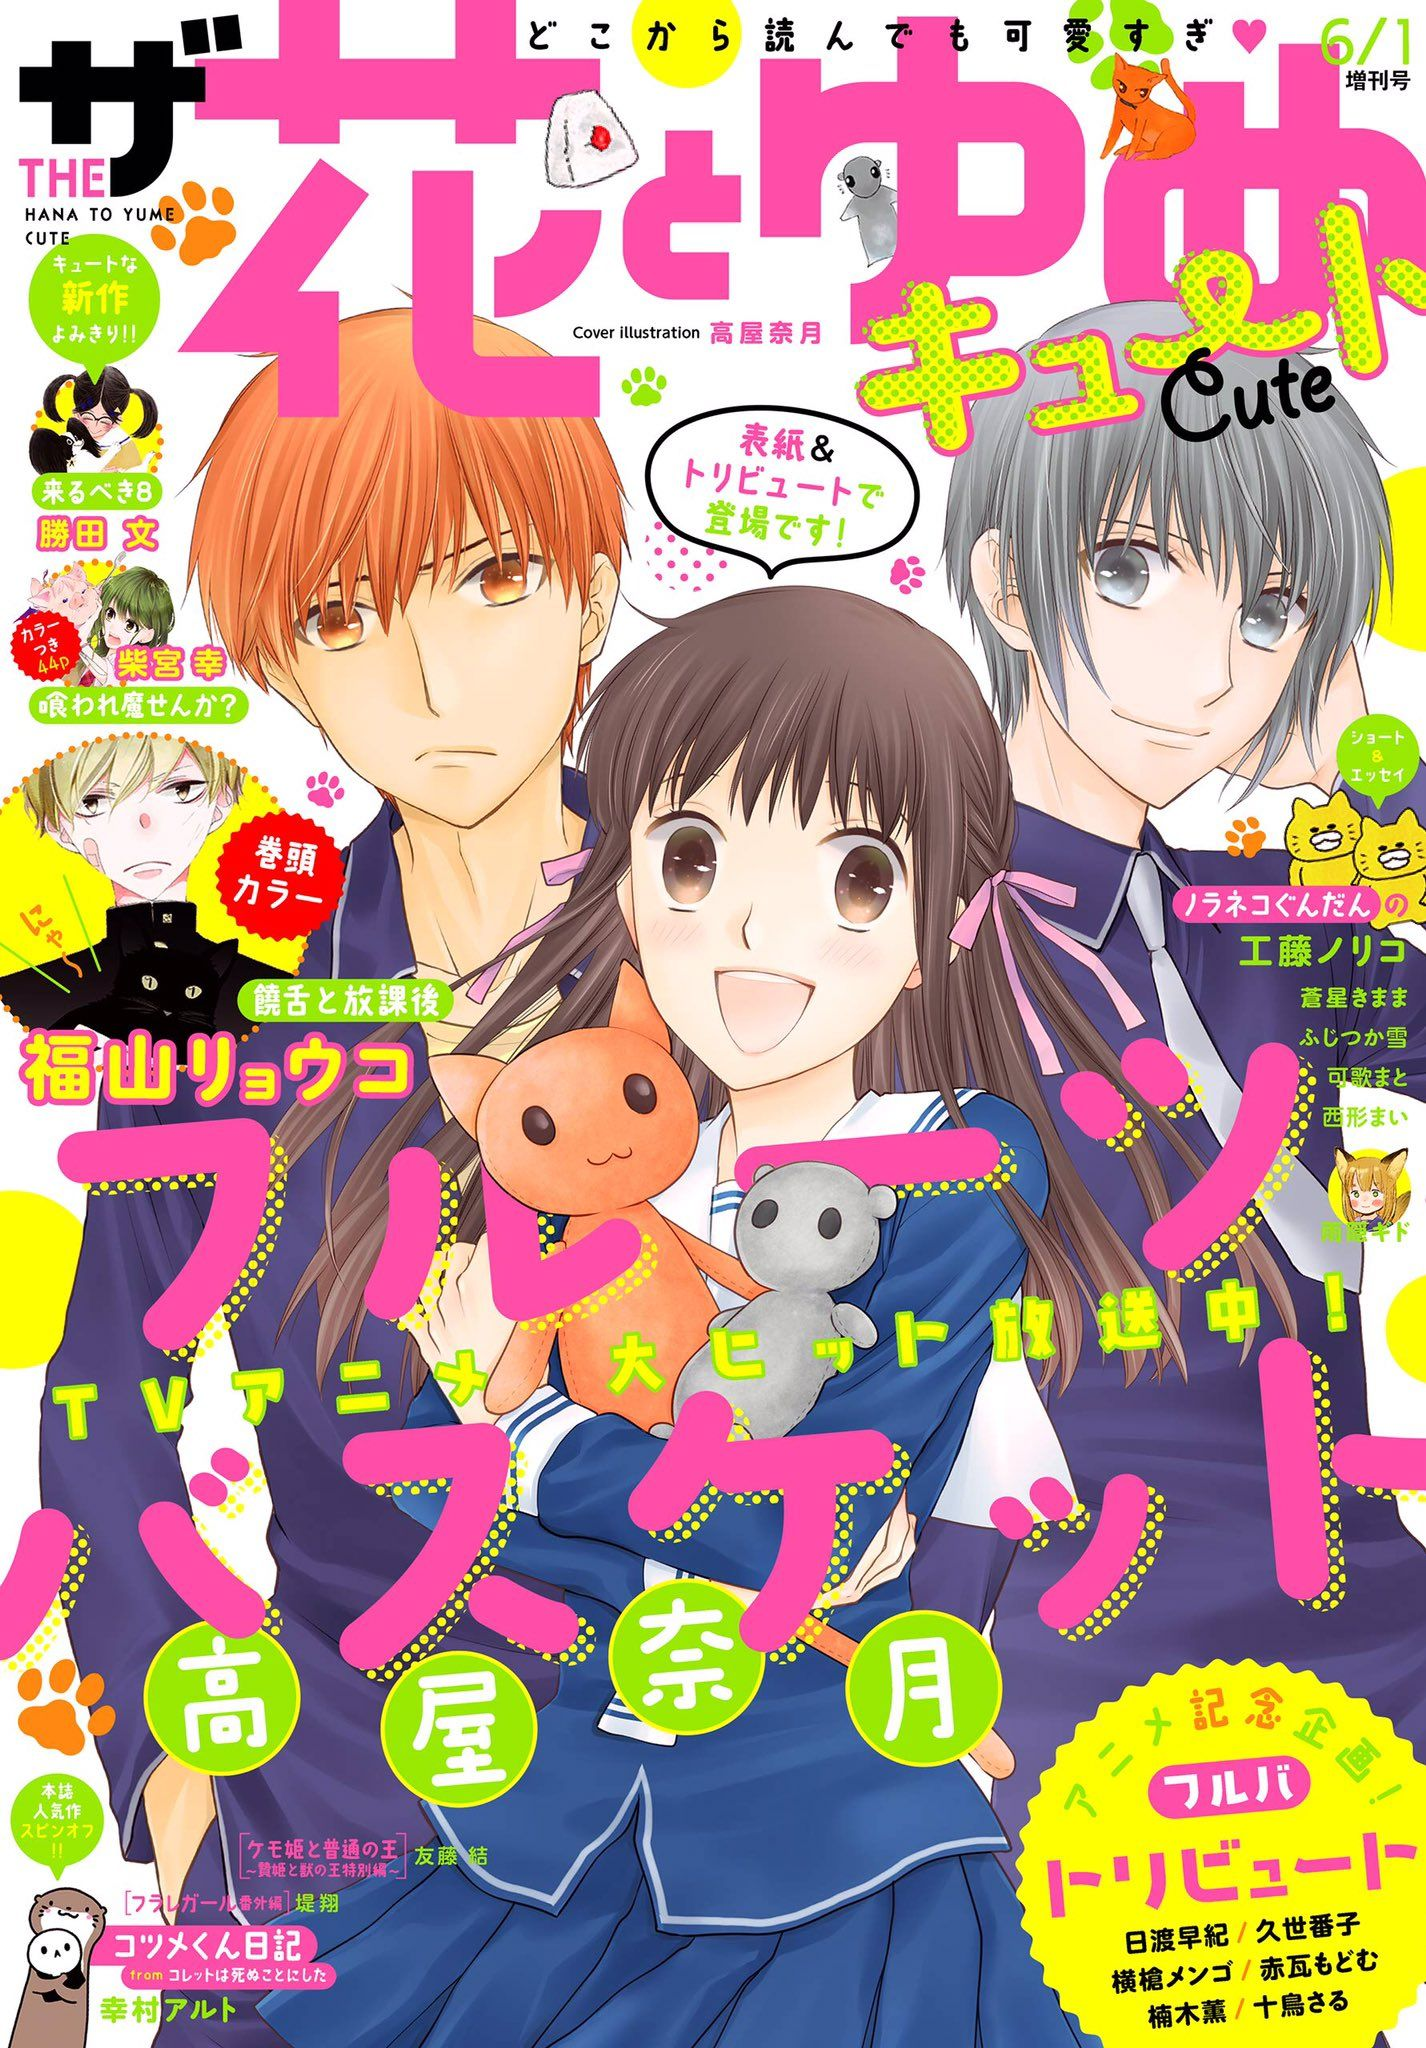 Twitter Fruits basket anime, Fruits basket manga, Fruits